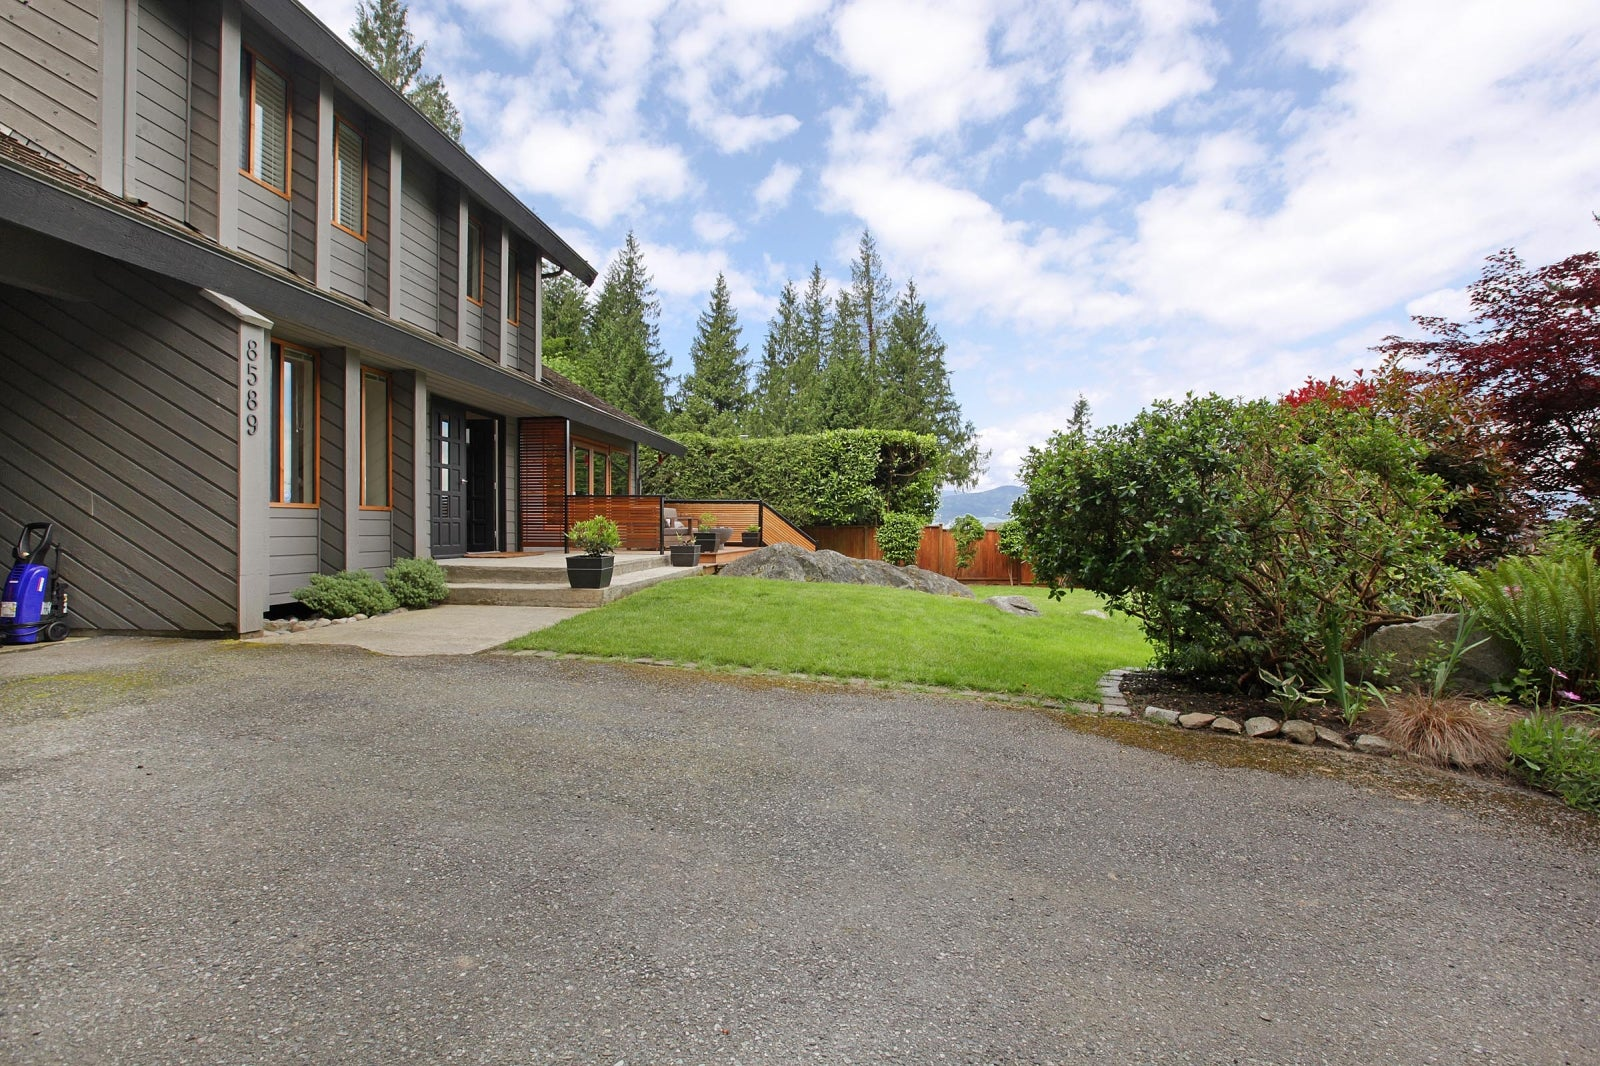 8589 BEDORA PLACE - Howe Sound House/Single Family for sale, 4 Bedrooms (R2177298) #2